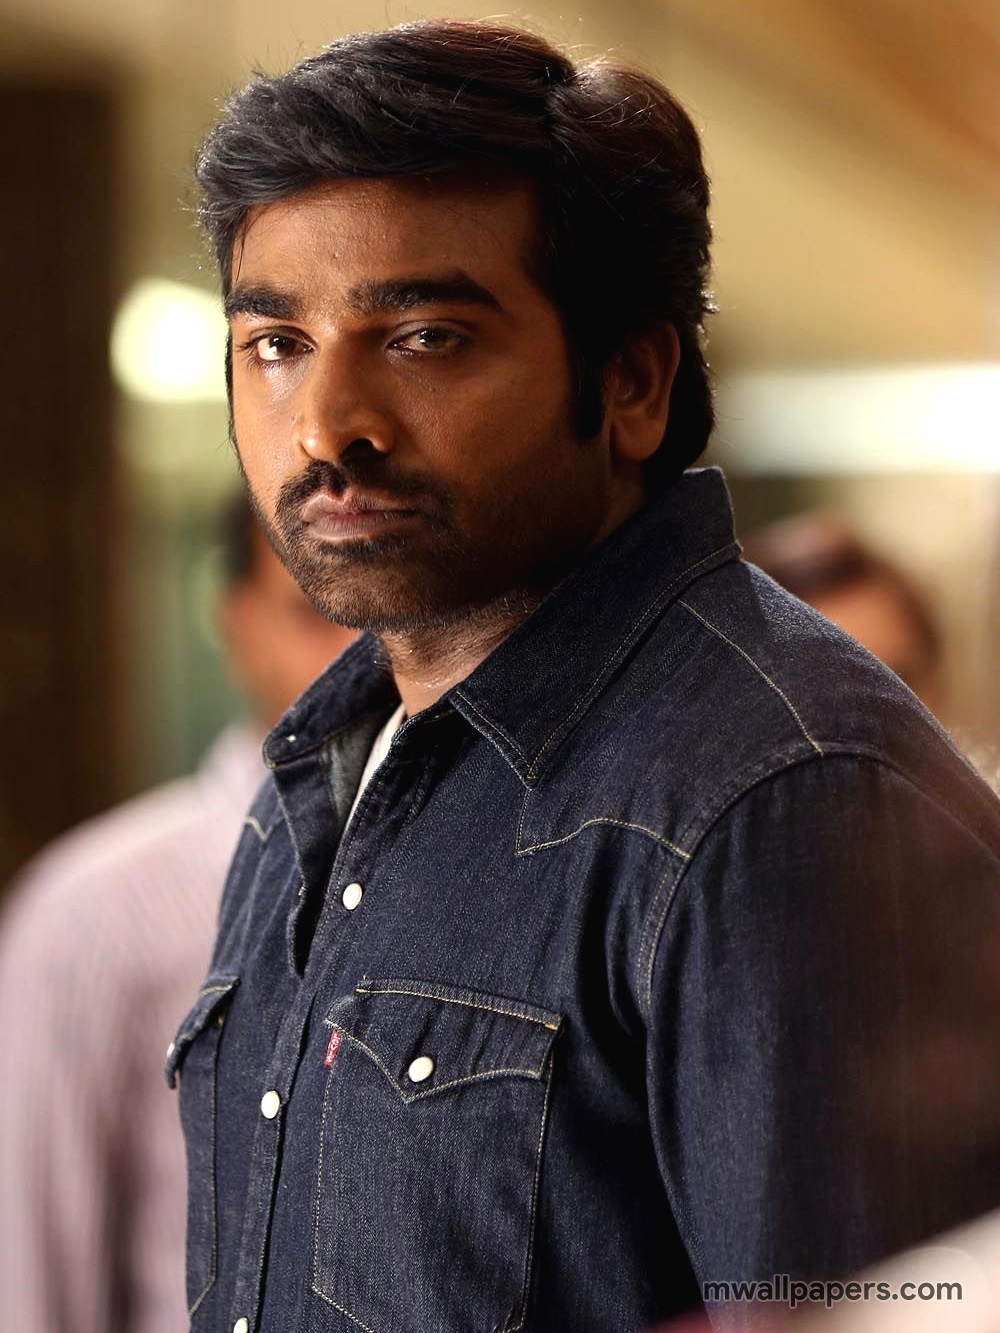 435 Vijay Sethupathi Hd Images Wallpapers 1000x1333 2021 High quality photos stills images pictures pics wallpapers galleries & posters of actor vijay sethupathi (aka) sethupathy, fans of vijay sethupathi (aka) vijay sethupathy, tamil movies, tamil cinema & kollywood, looking for latest photos and stills online or online information on vijay sethupathi will find. vijay sethupathi hd images wallpapers